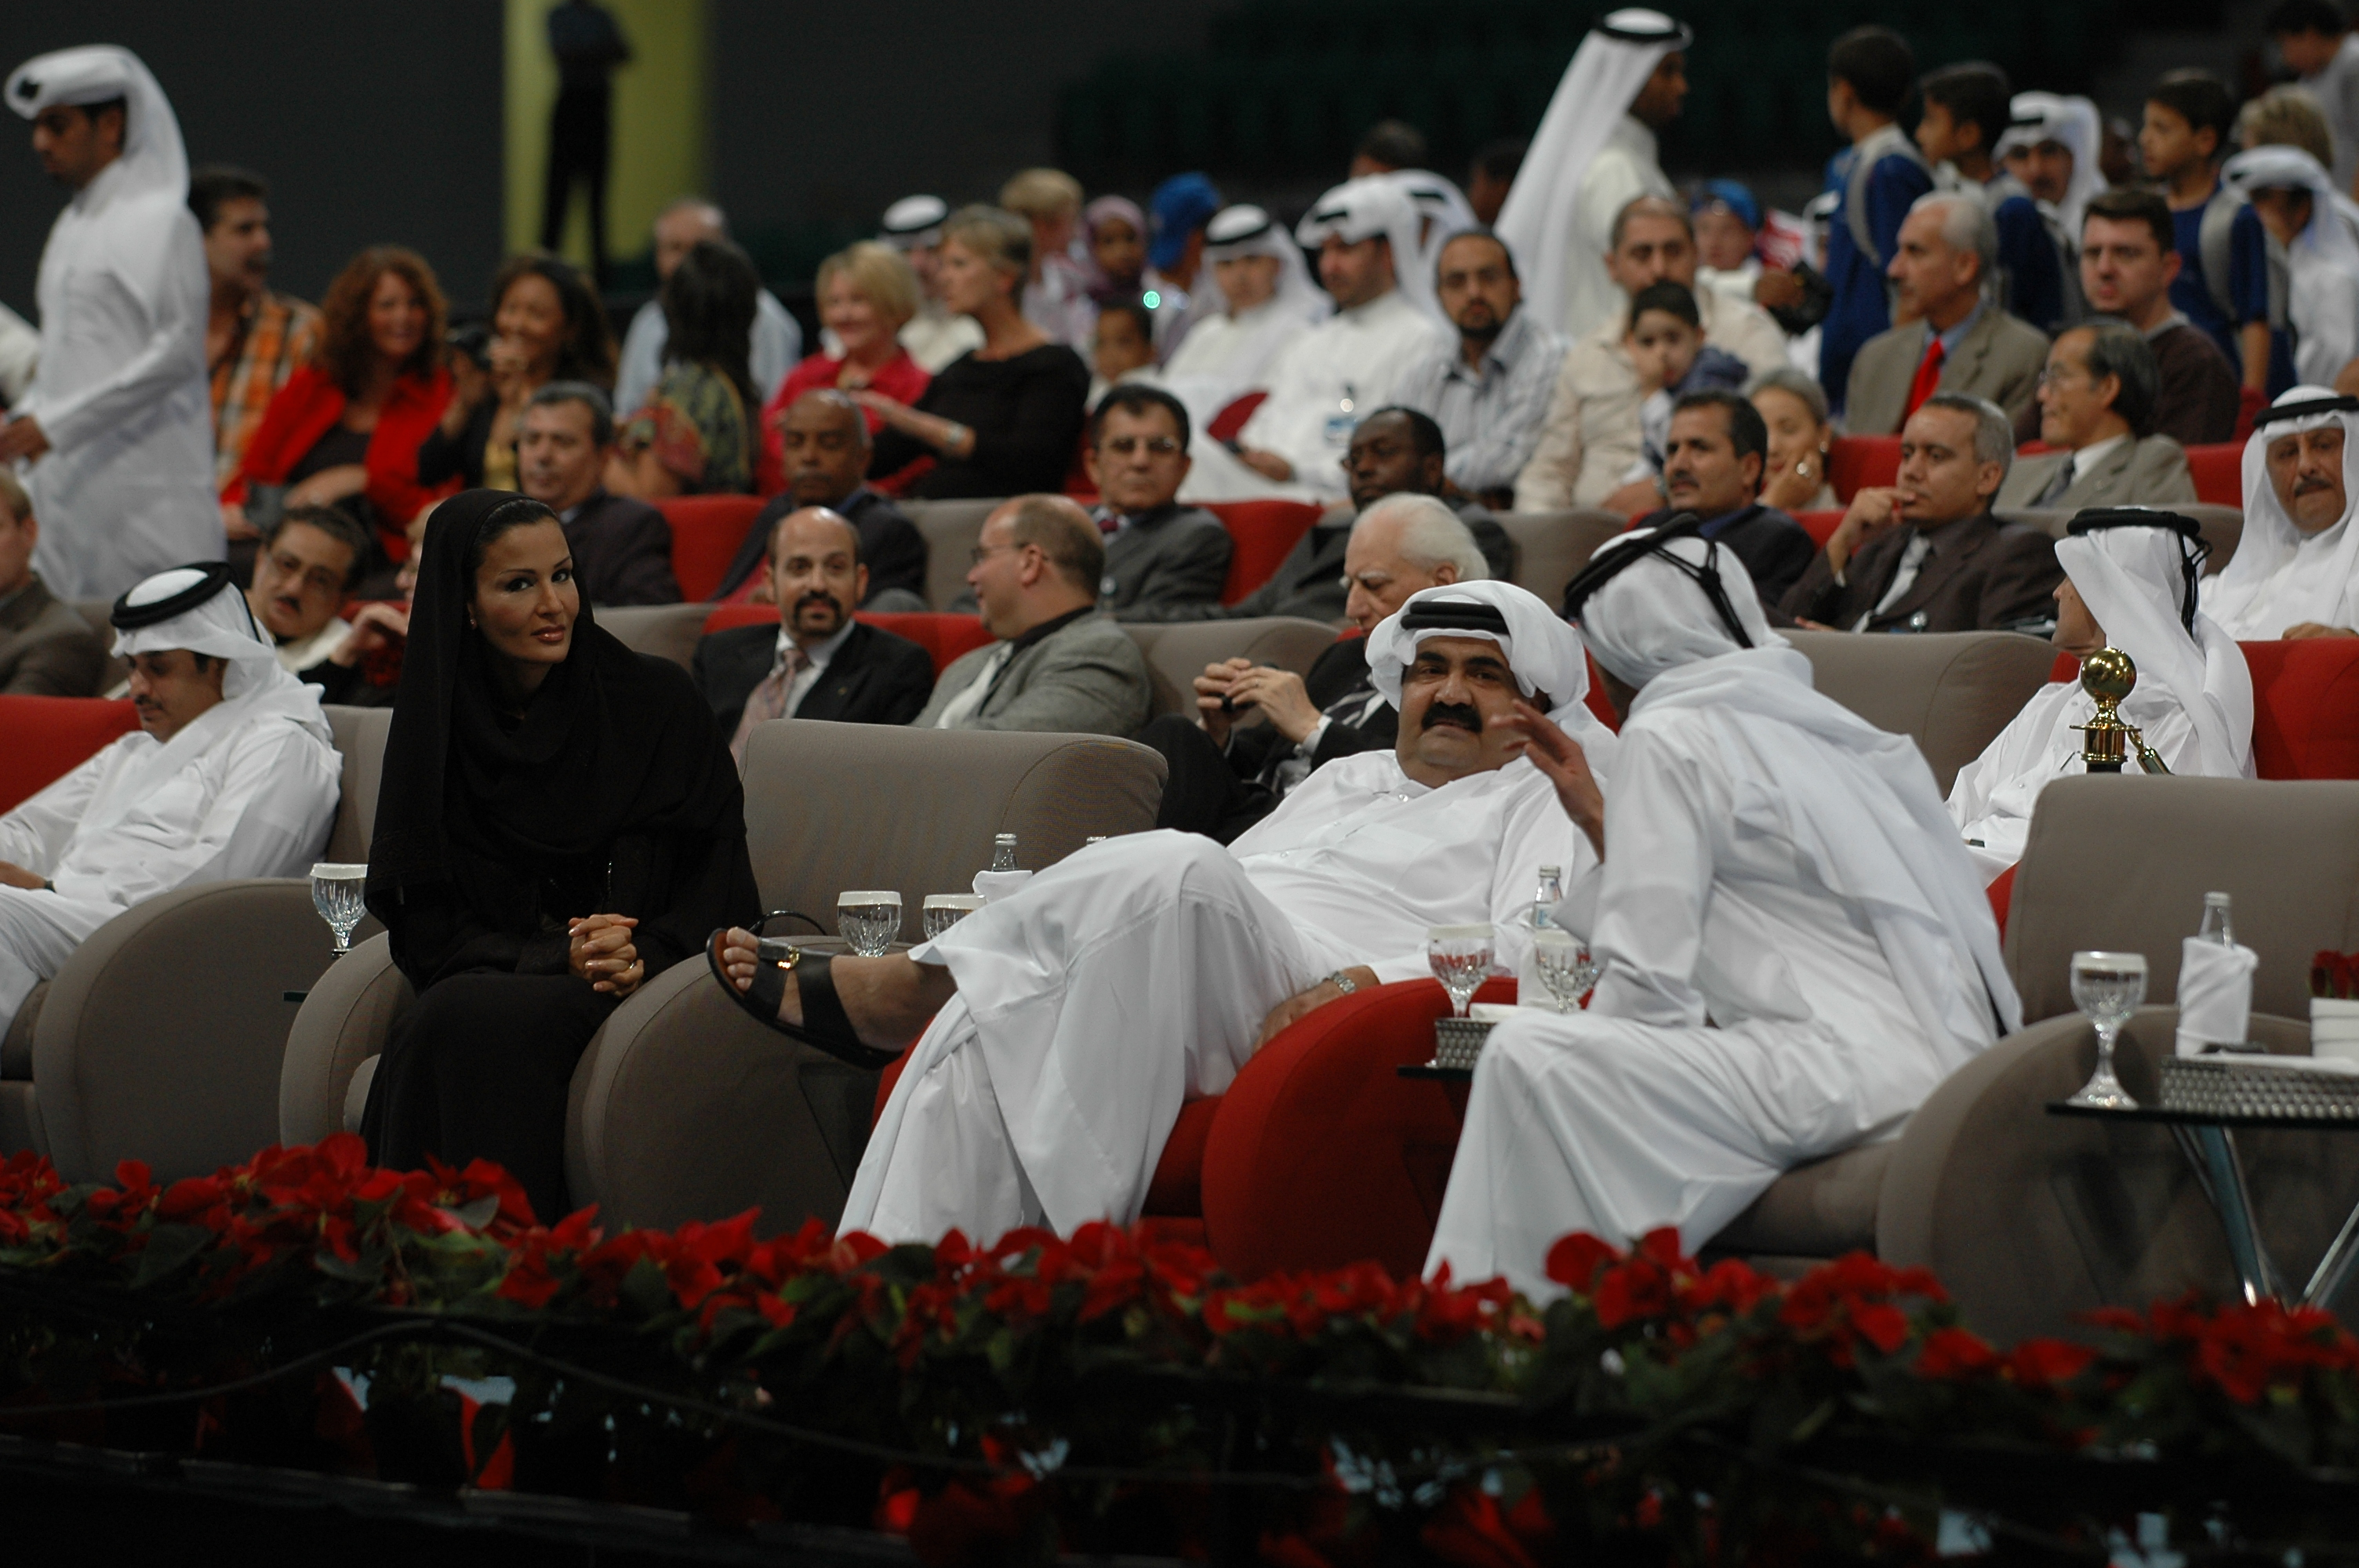 Opening night in Qatar, with the Emir and his wife.